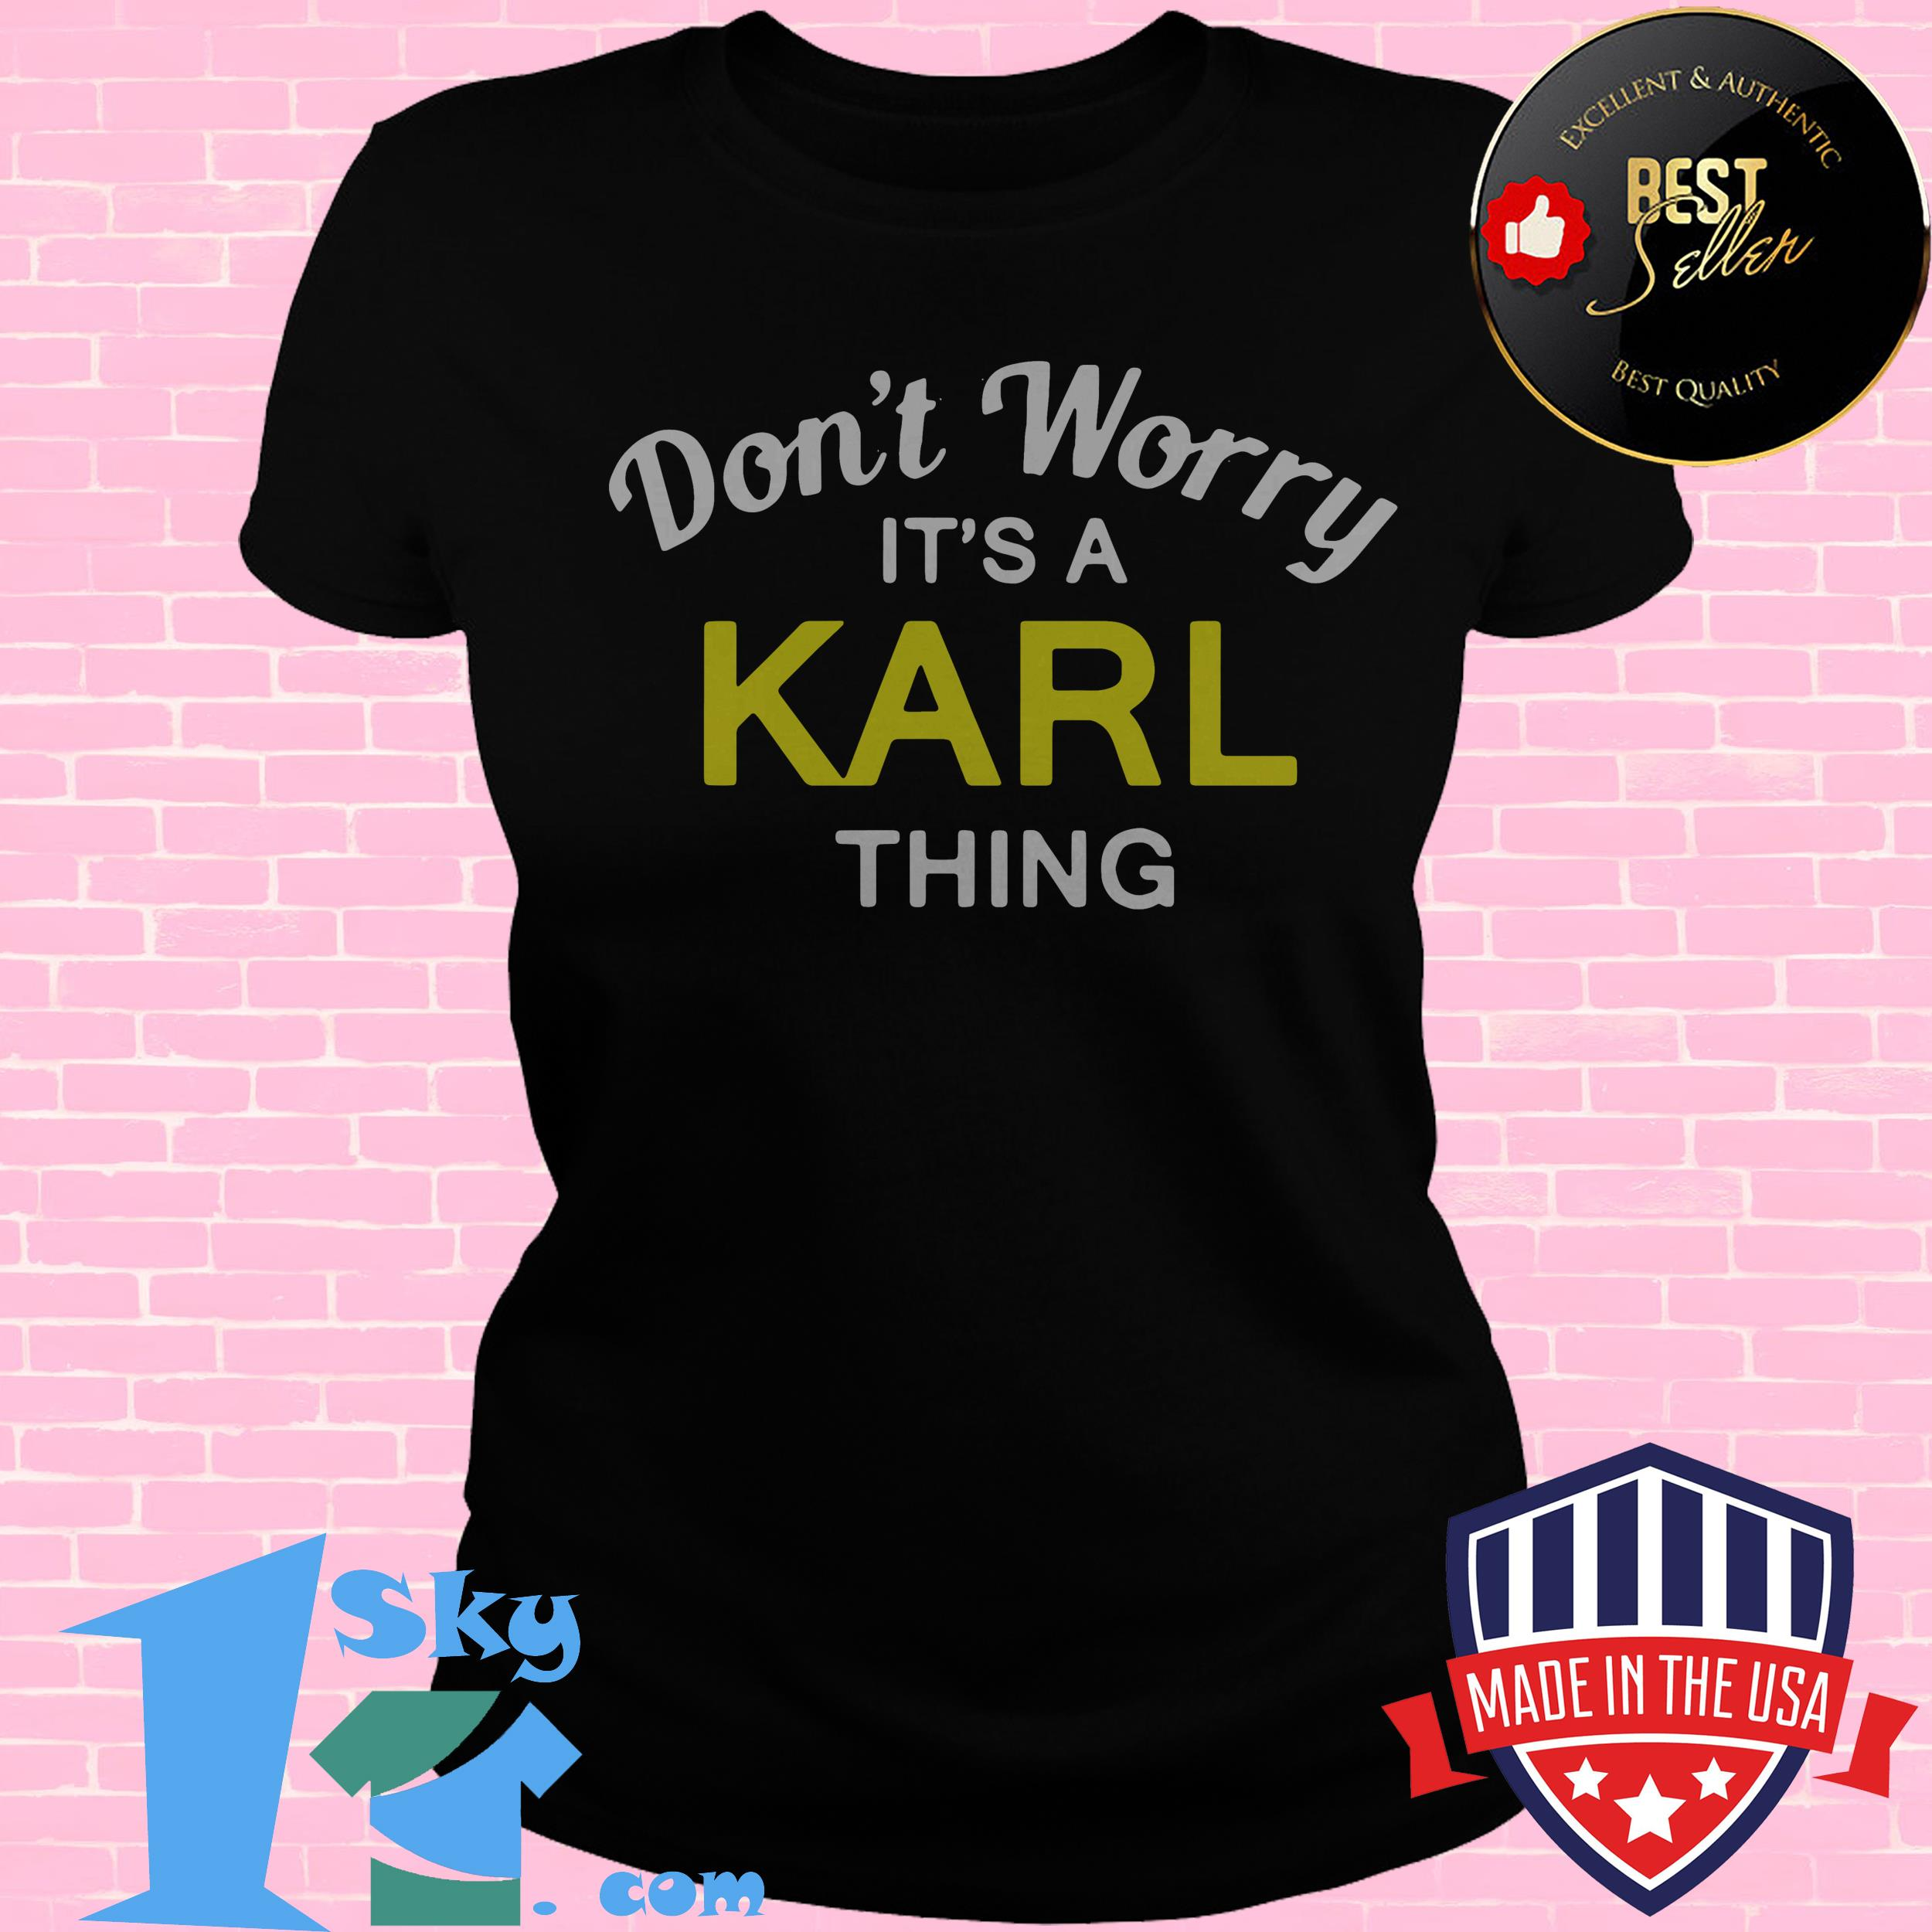 dont worry its a karl thing ladies tee - Don't Worry It's a Karl Thing shirt